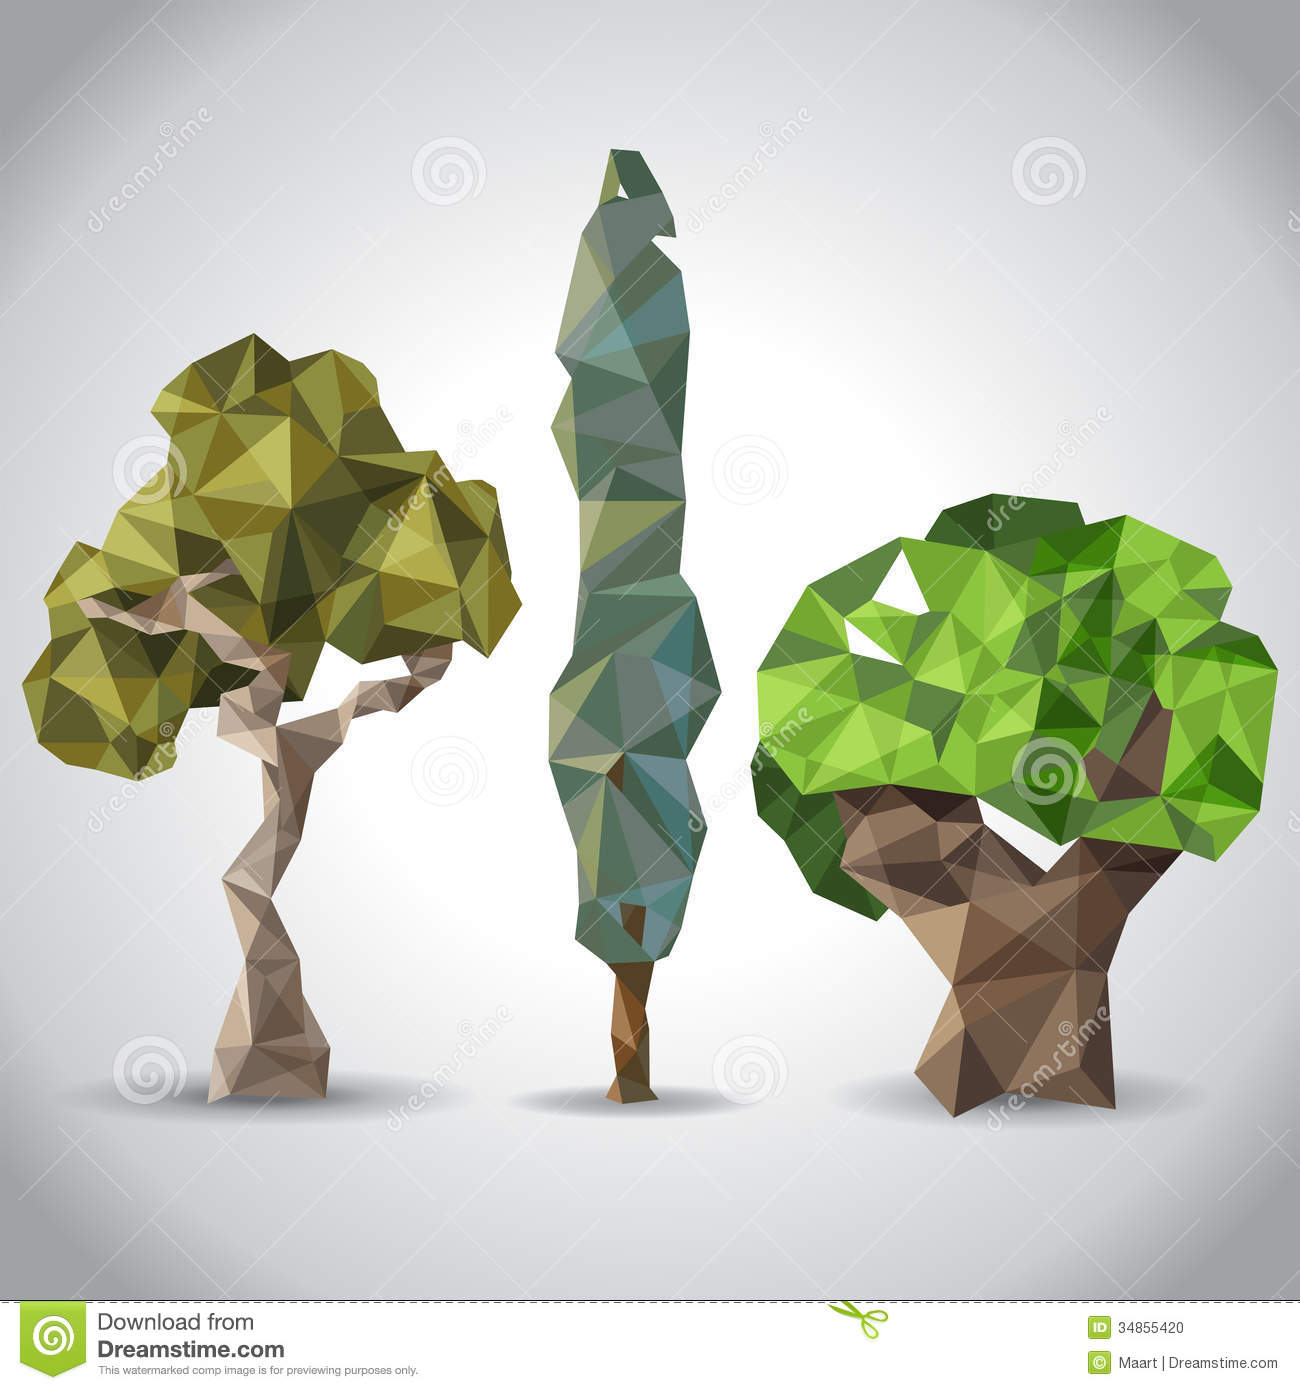 Stylized Trees Stock Photo - Image: 34855420